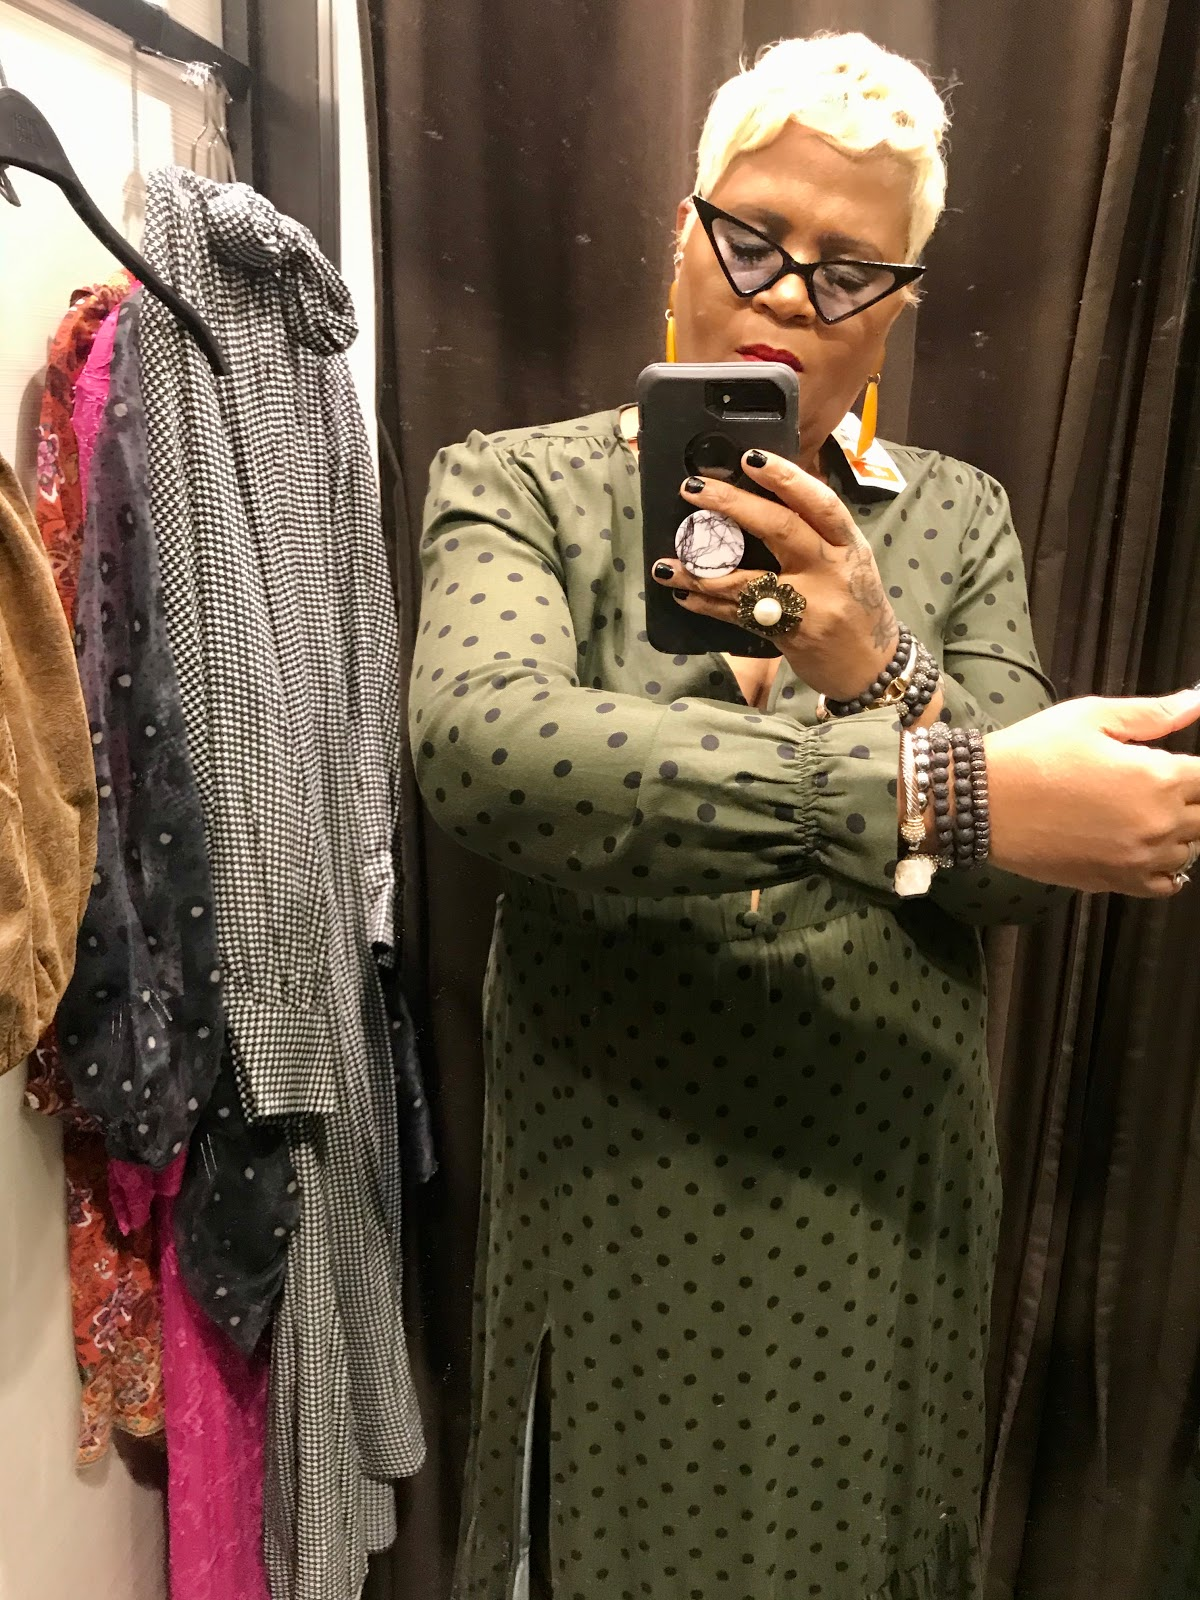 Green Dress try On at Zara store in Dallas Mall